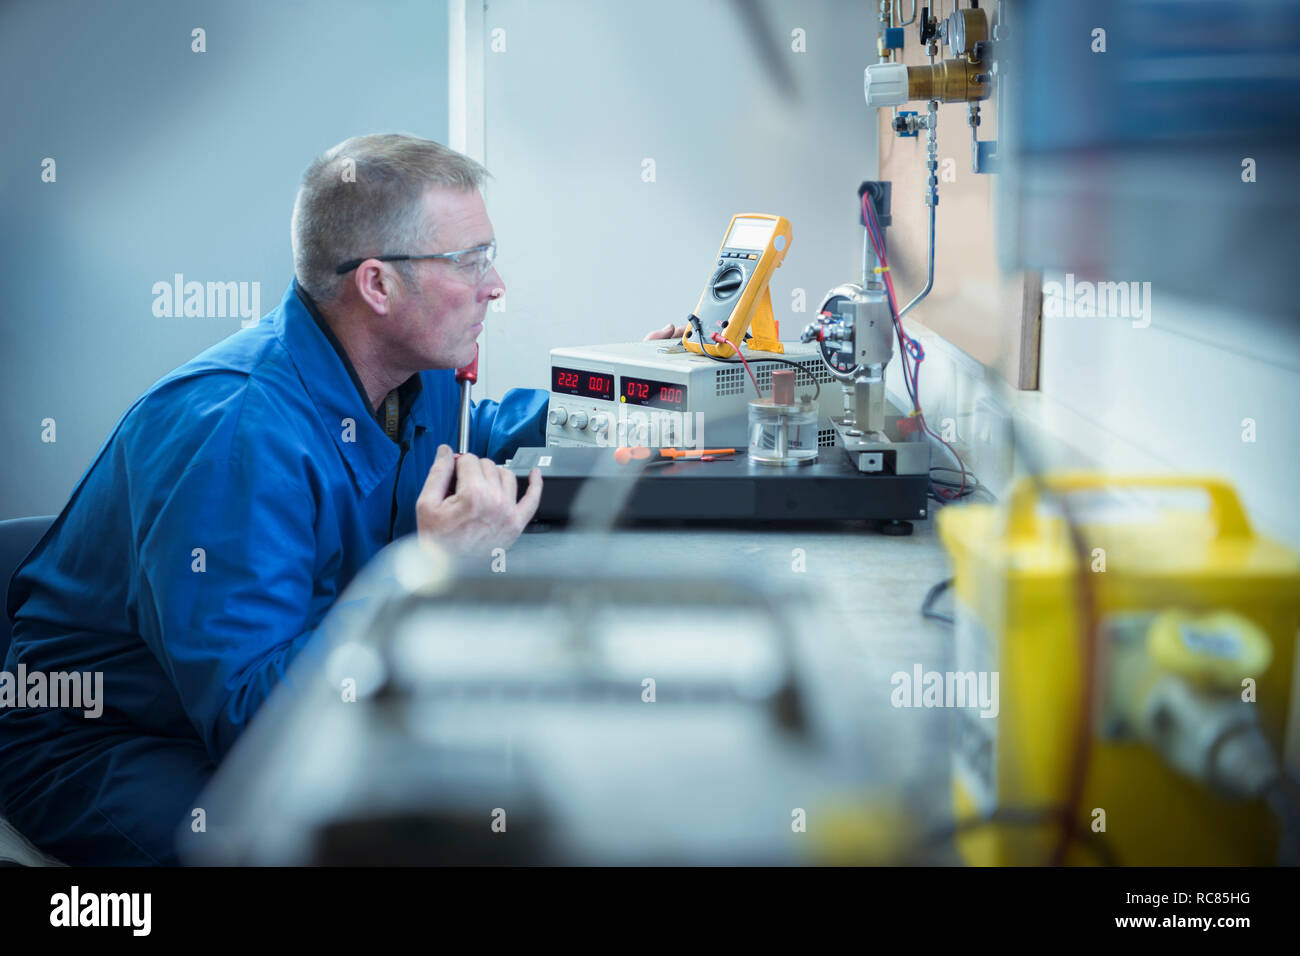 Engineer pressure testing sensors in nuclear power station during outage - Stock Image